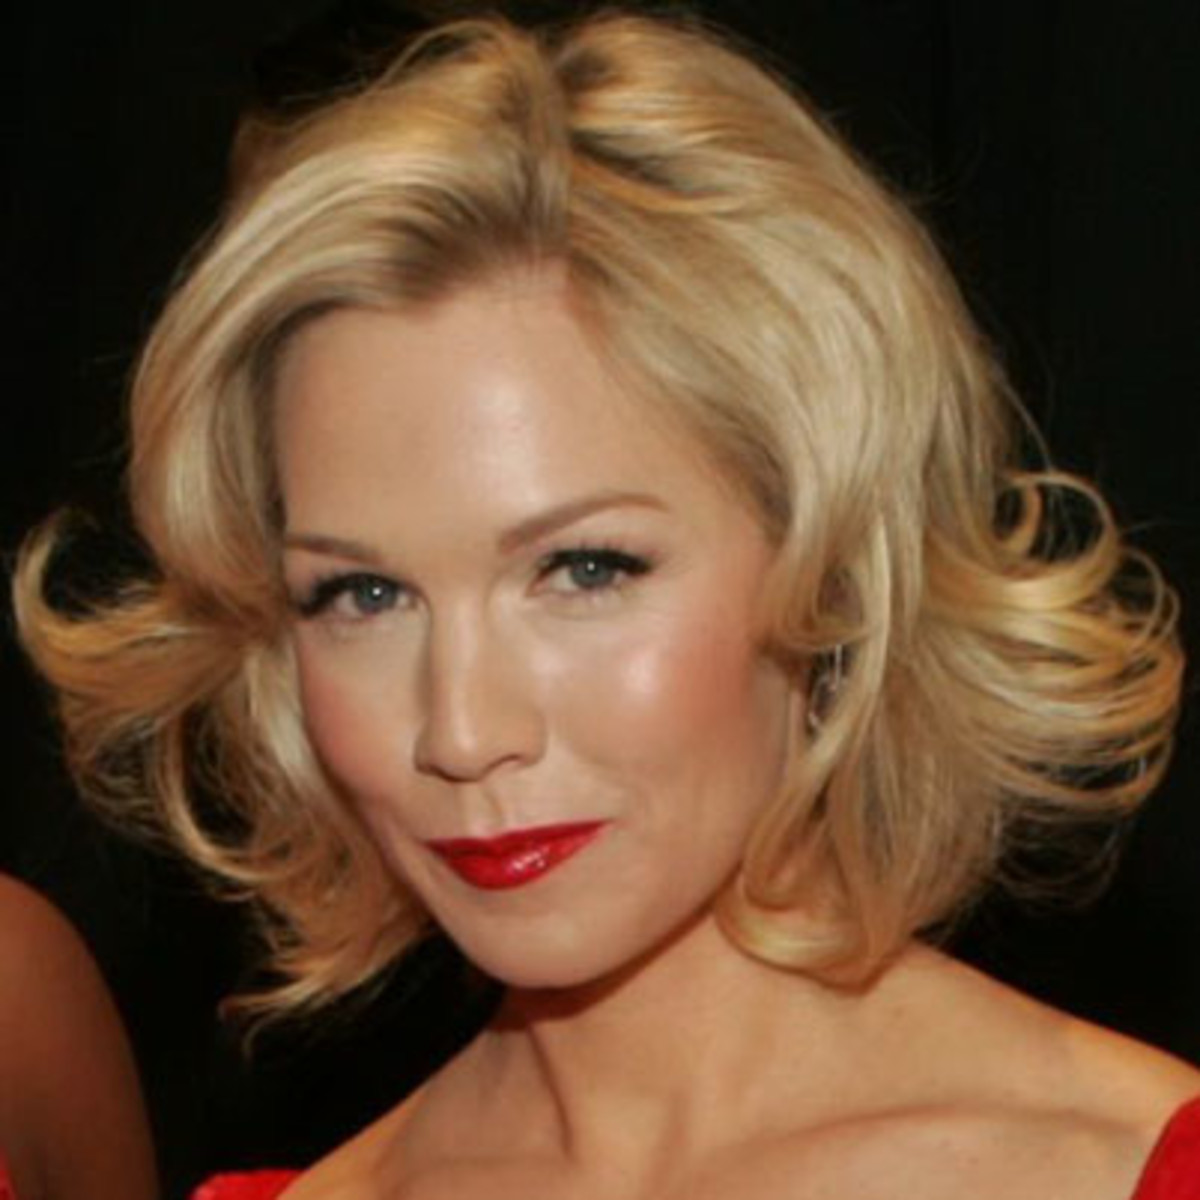 Jennie Garth Animal Rights Activist Actor Biography